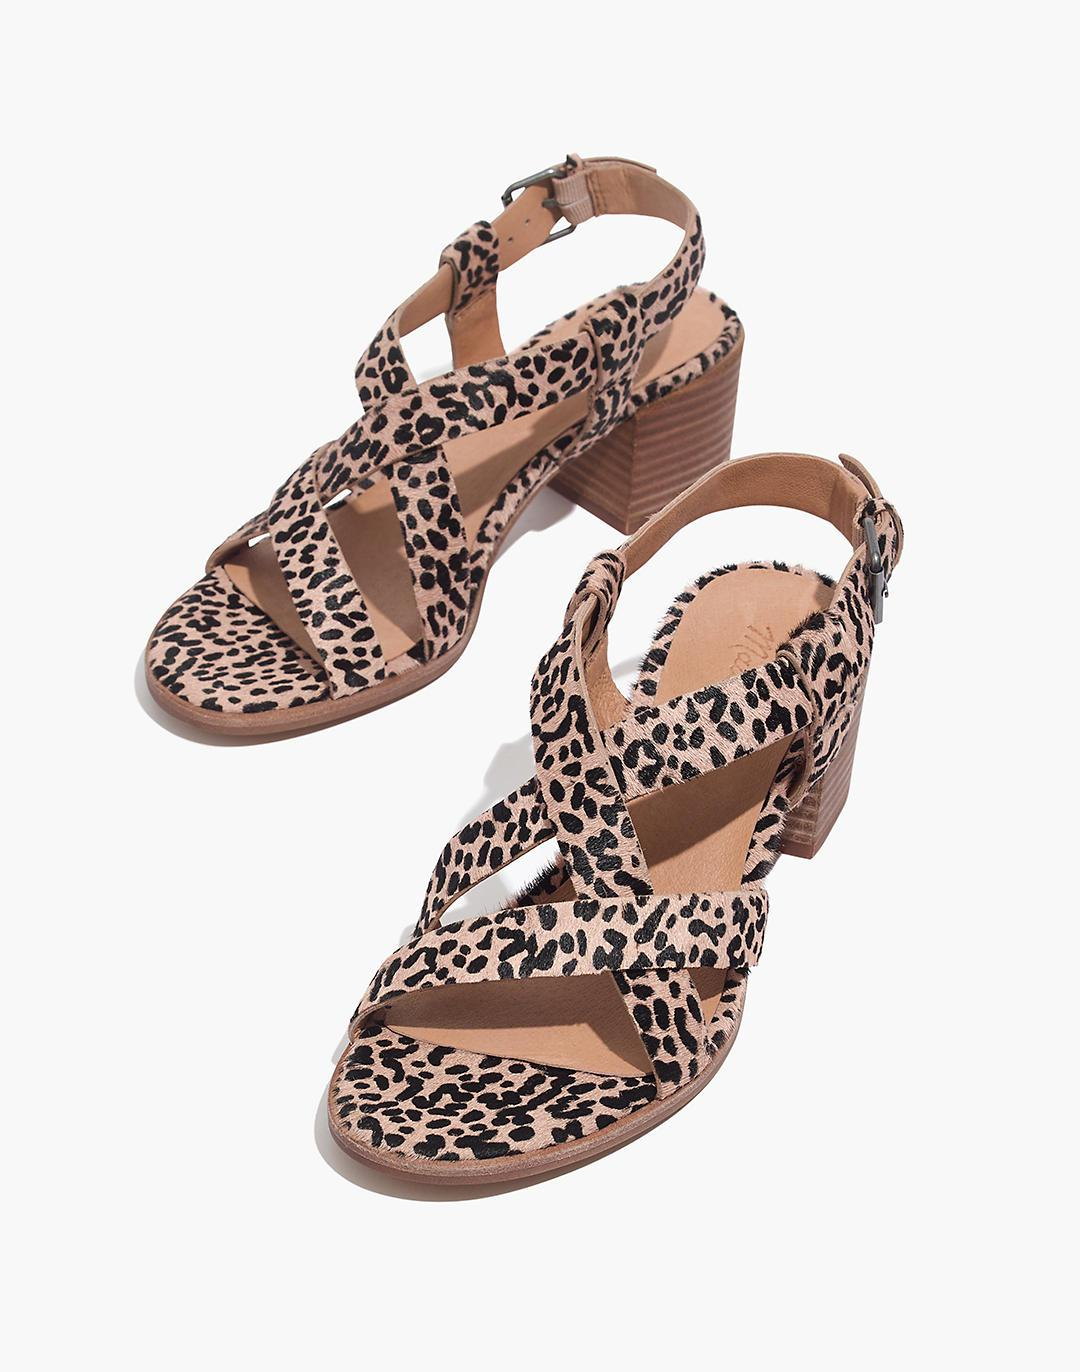 The Alyssa Sandal in Spotted Calf Hair